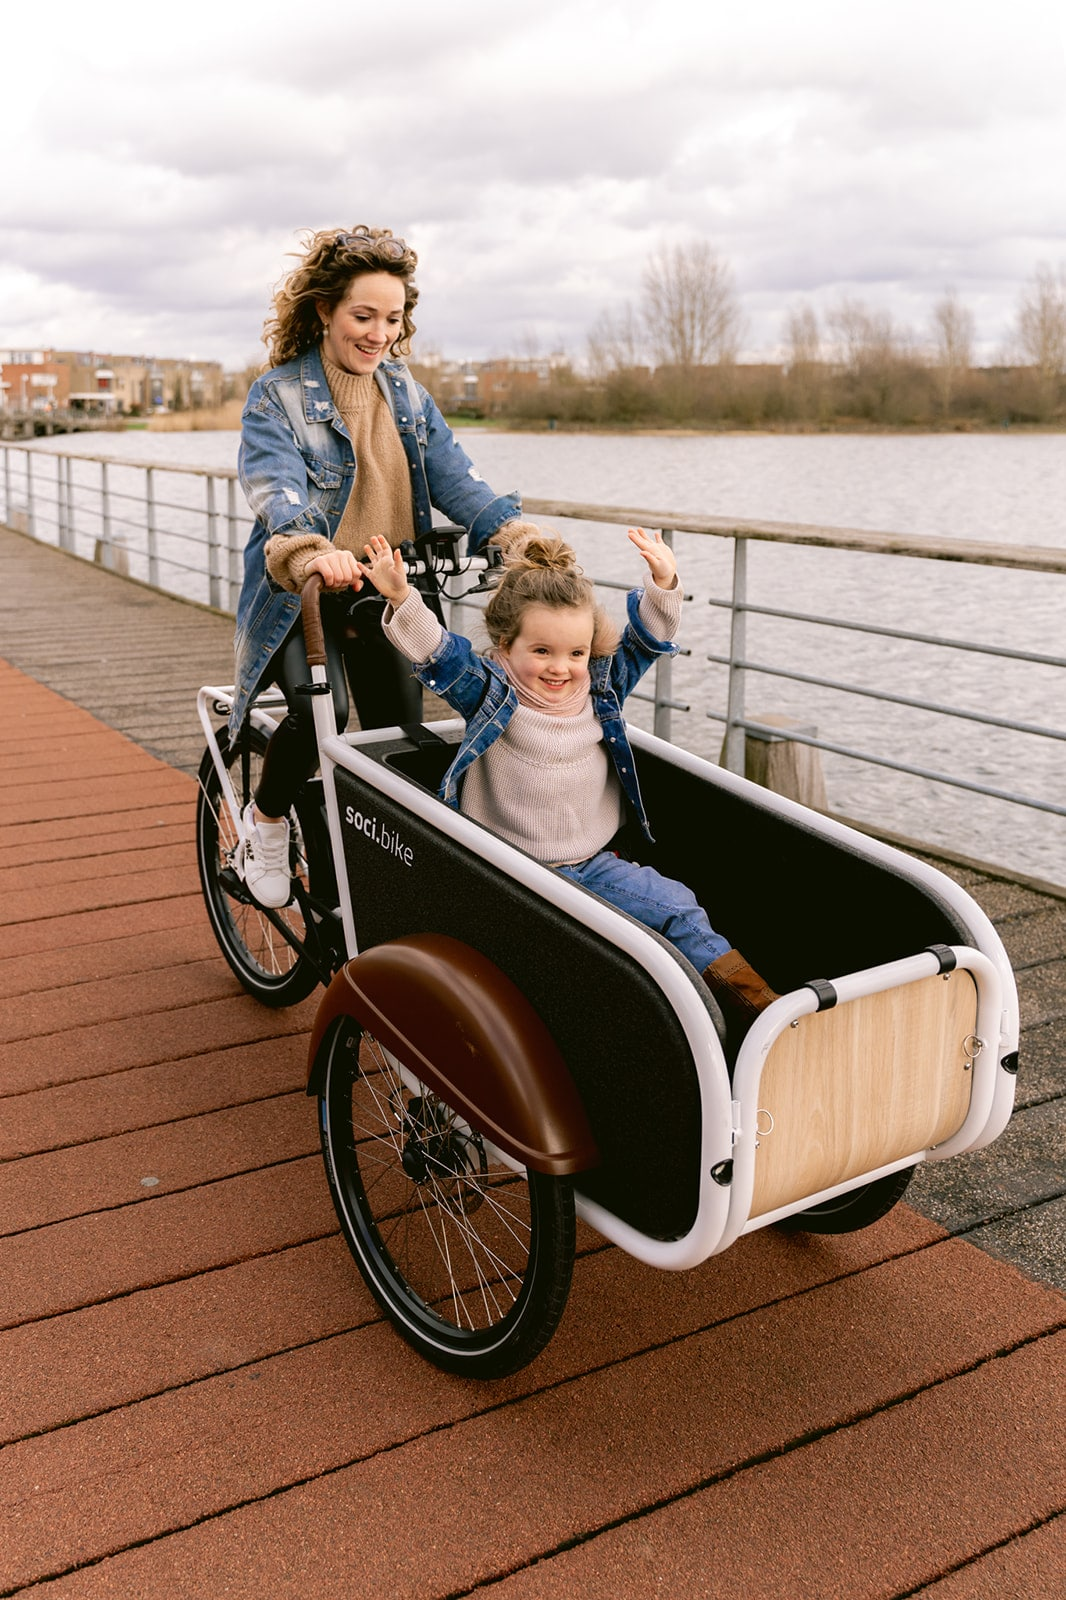 Over soci.bike ambassadeur BINKBIKES Family & Cargo